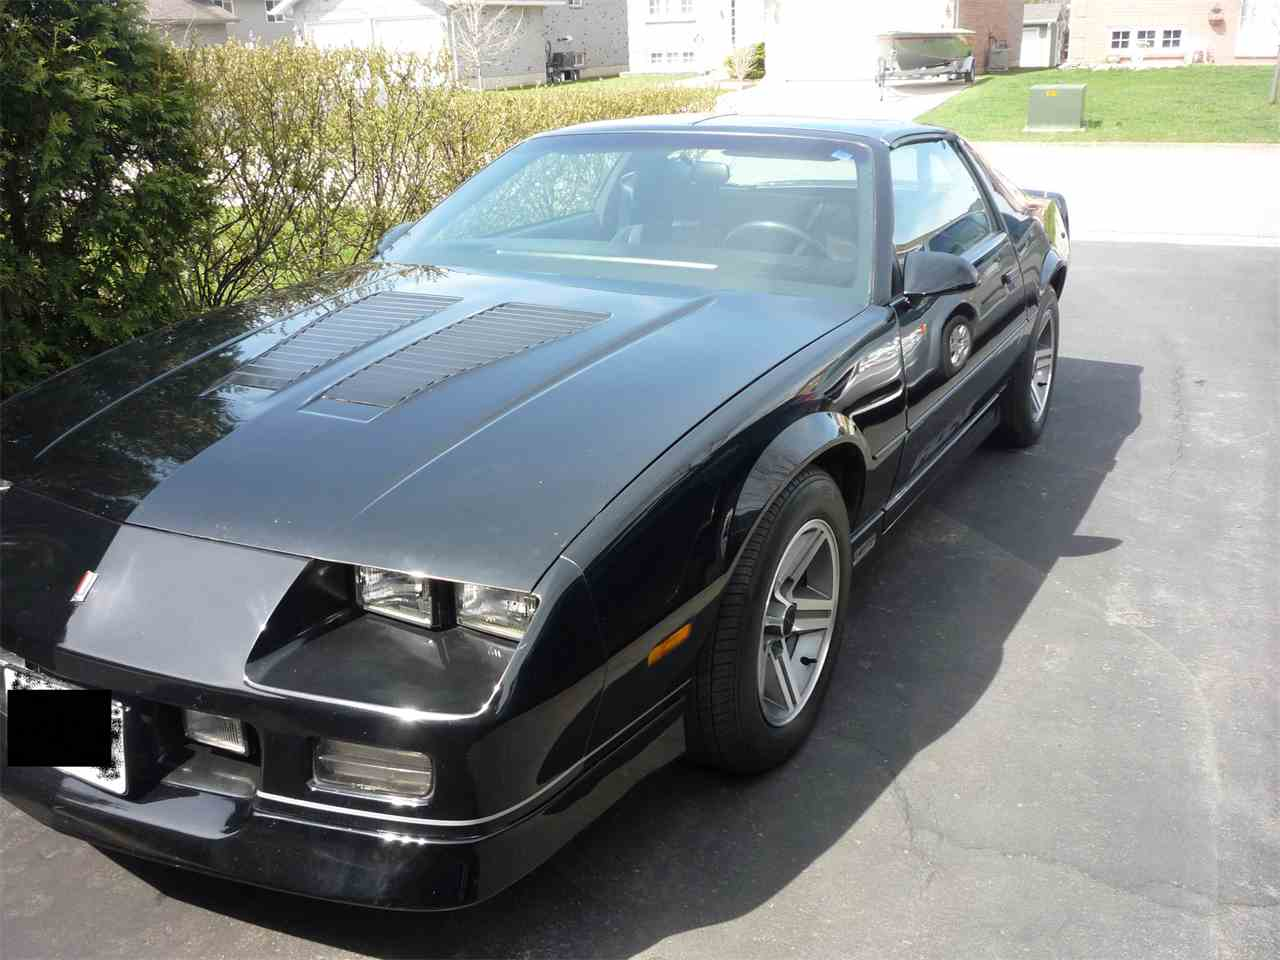 Large Picture of 1986 Chevrolet Camaro IROC-Z located in Port Colborne Ontario - $12,000.00 Offered by a Private Seller - GK6I